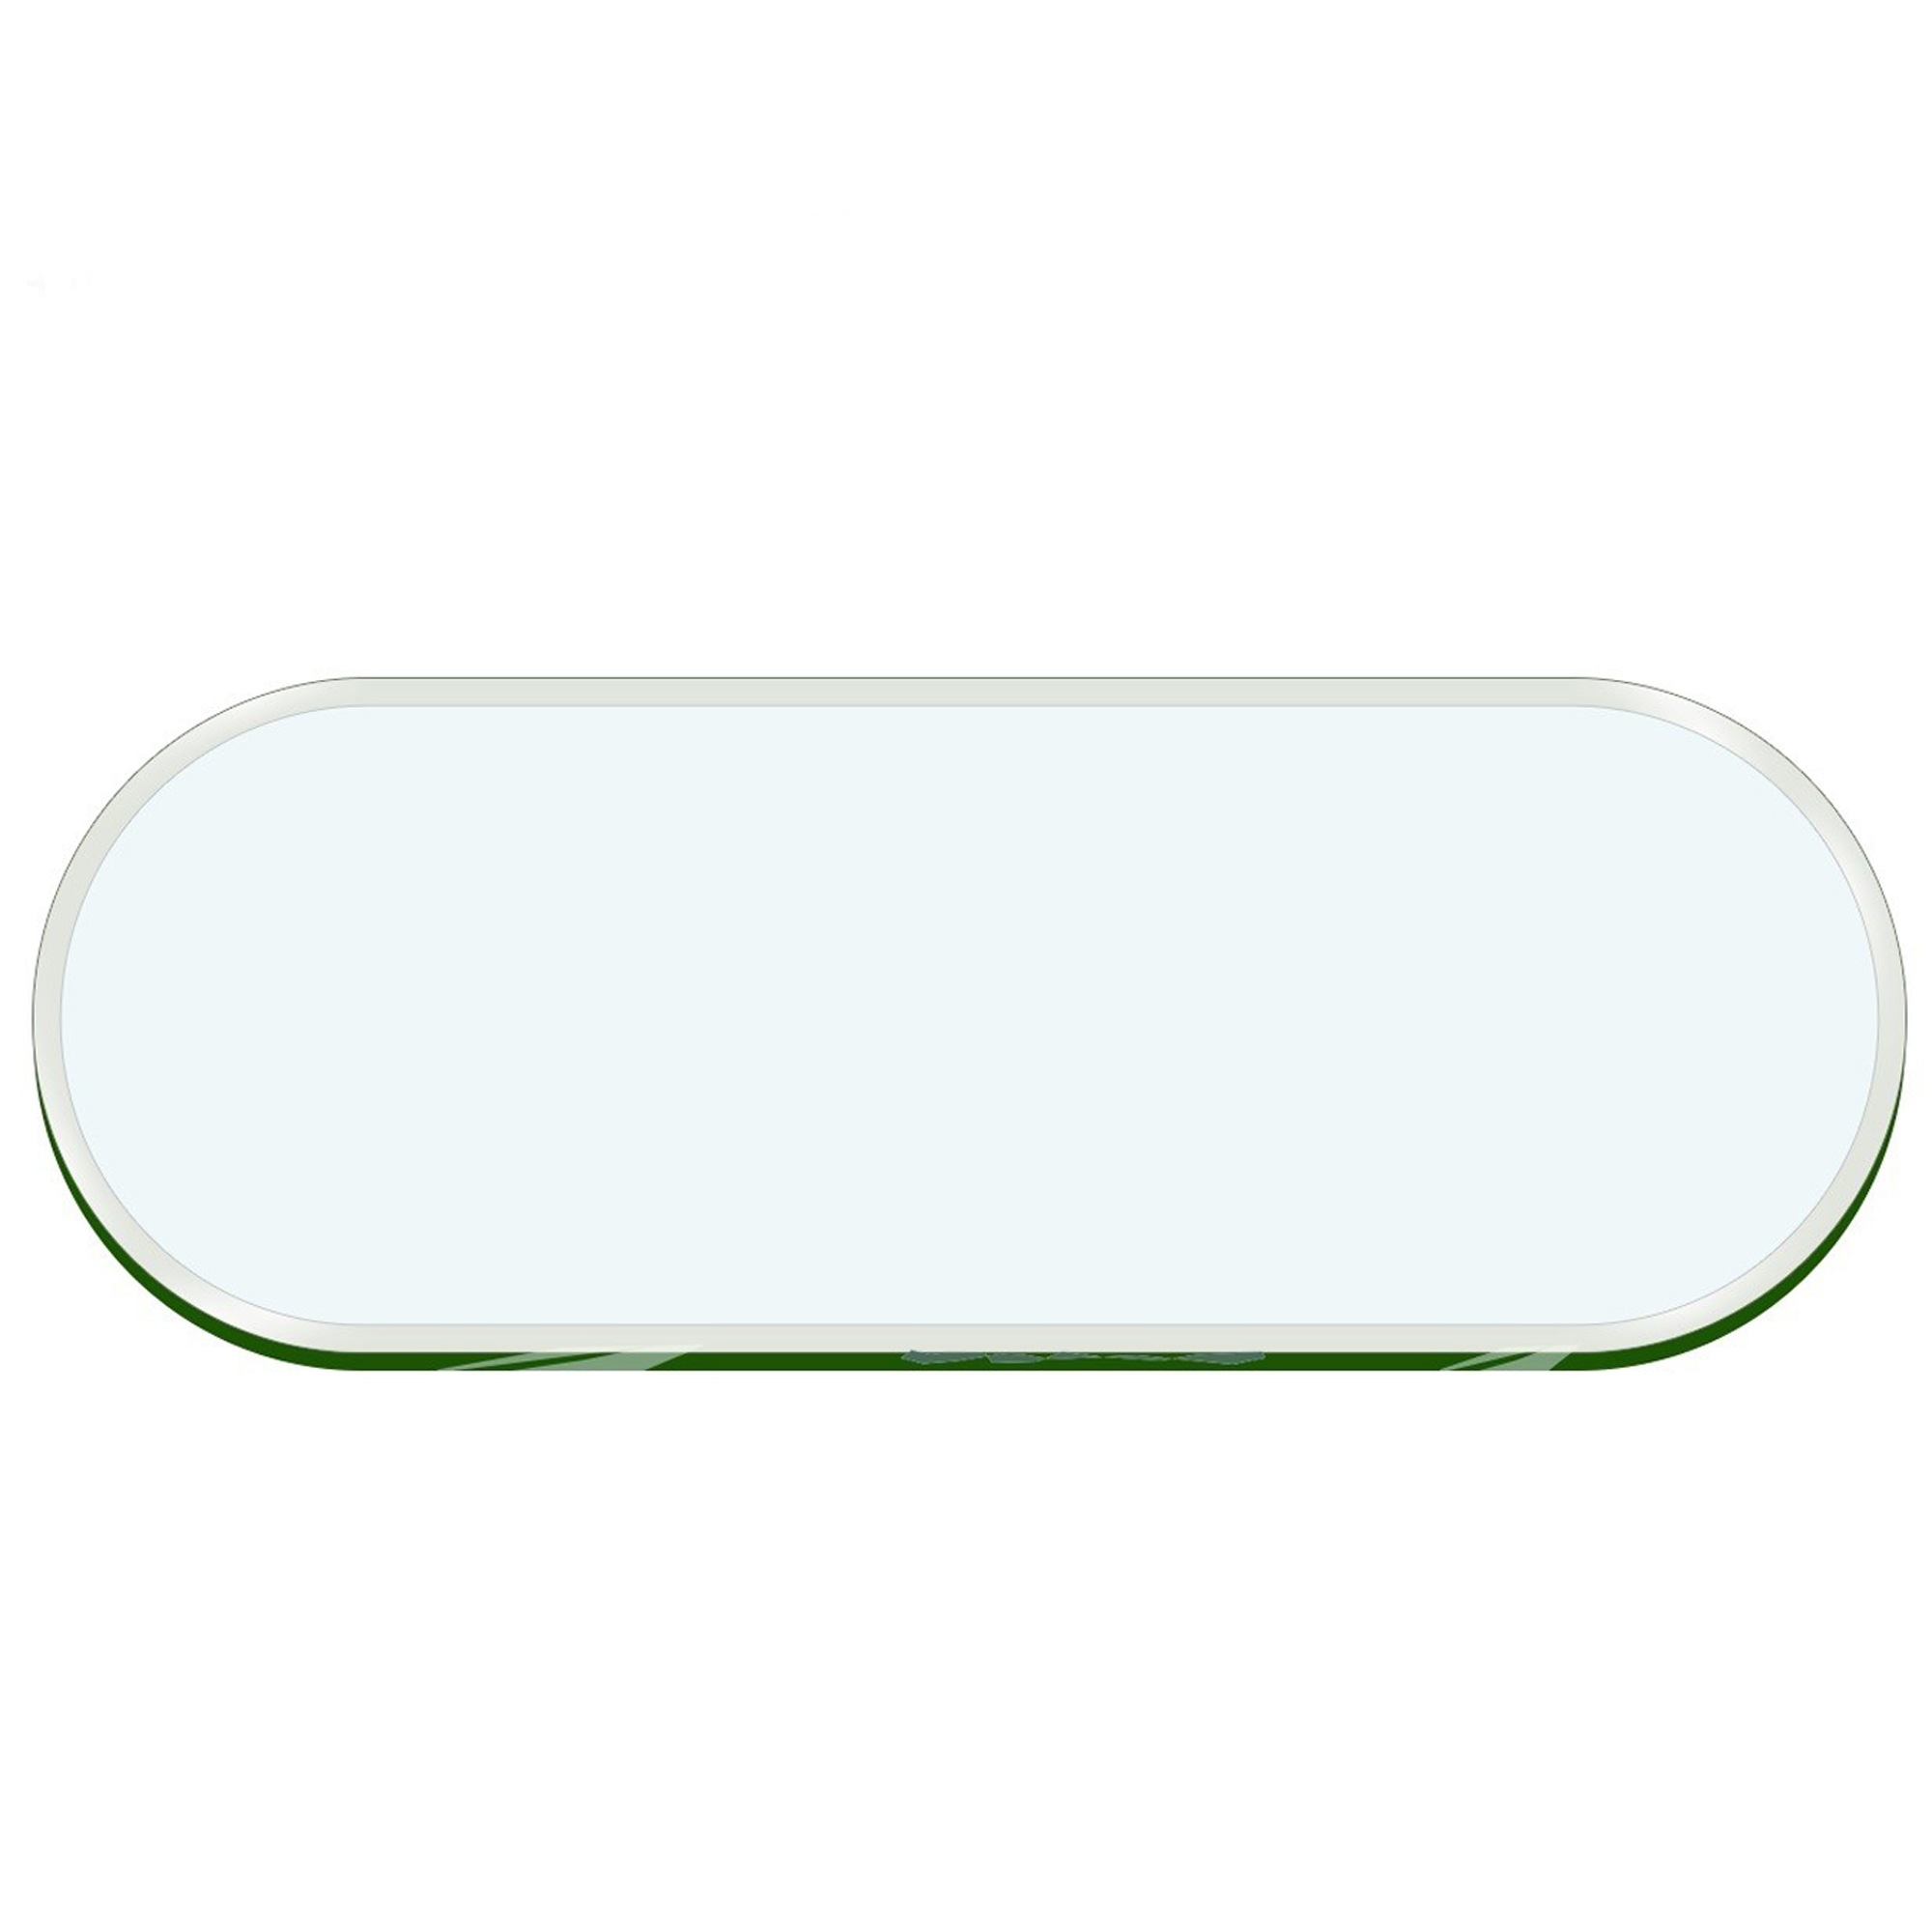 Oval Racetrack Glass Table Top 1 2 Quot Thick 1 Quot Beveled